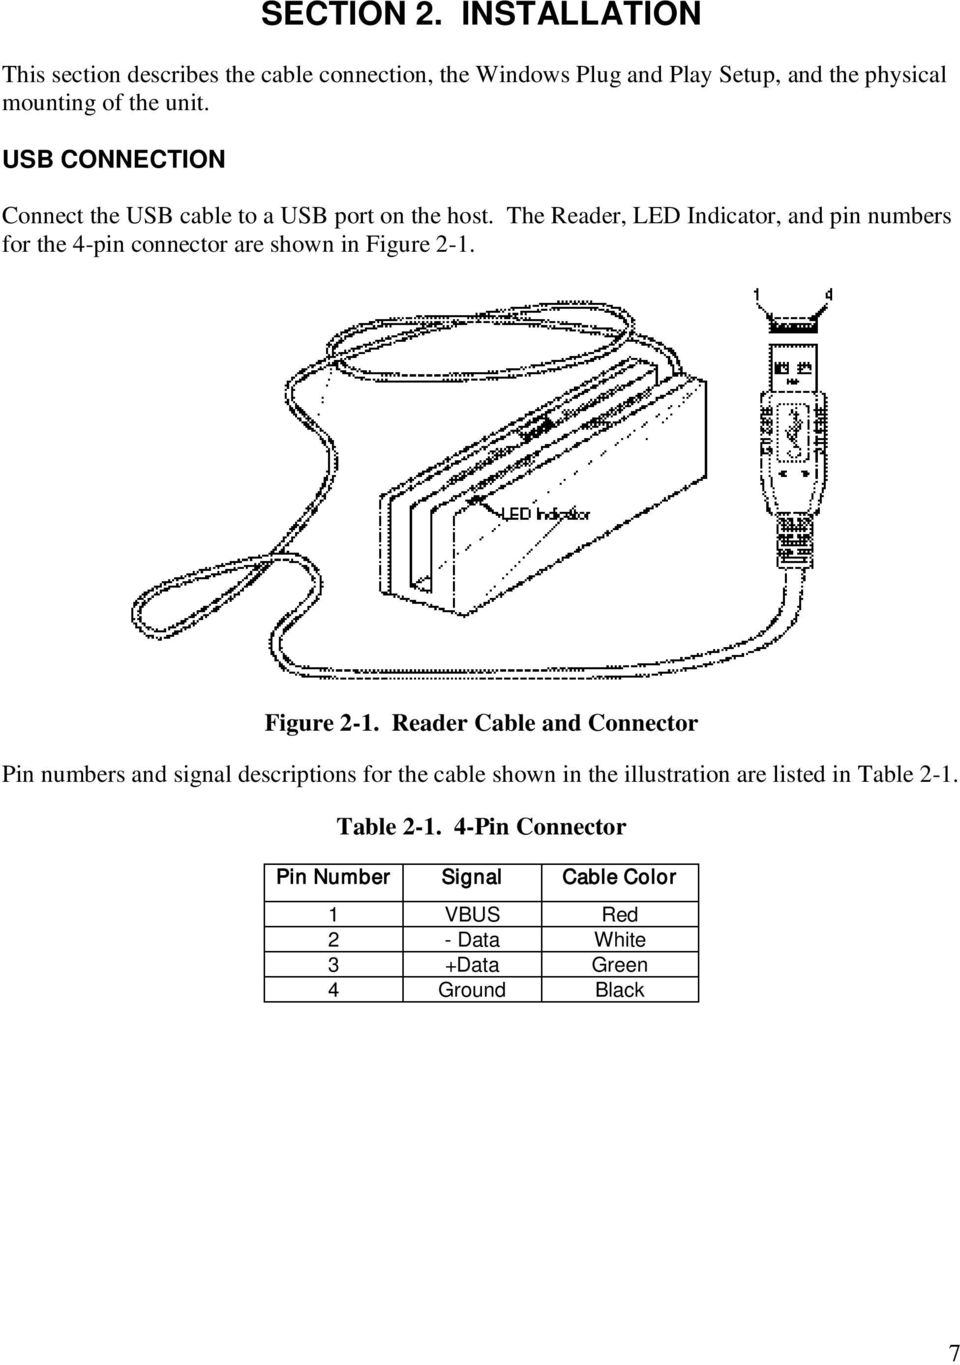 Usb Kb Sureswipe Swipe Reader Technical Reference Manual Pdf Wiring Red White Black Green Connection Connect The Cable To A Port On Host